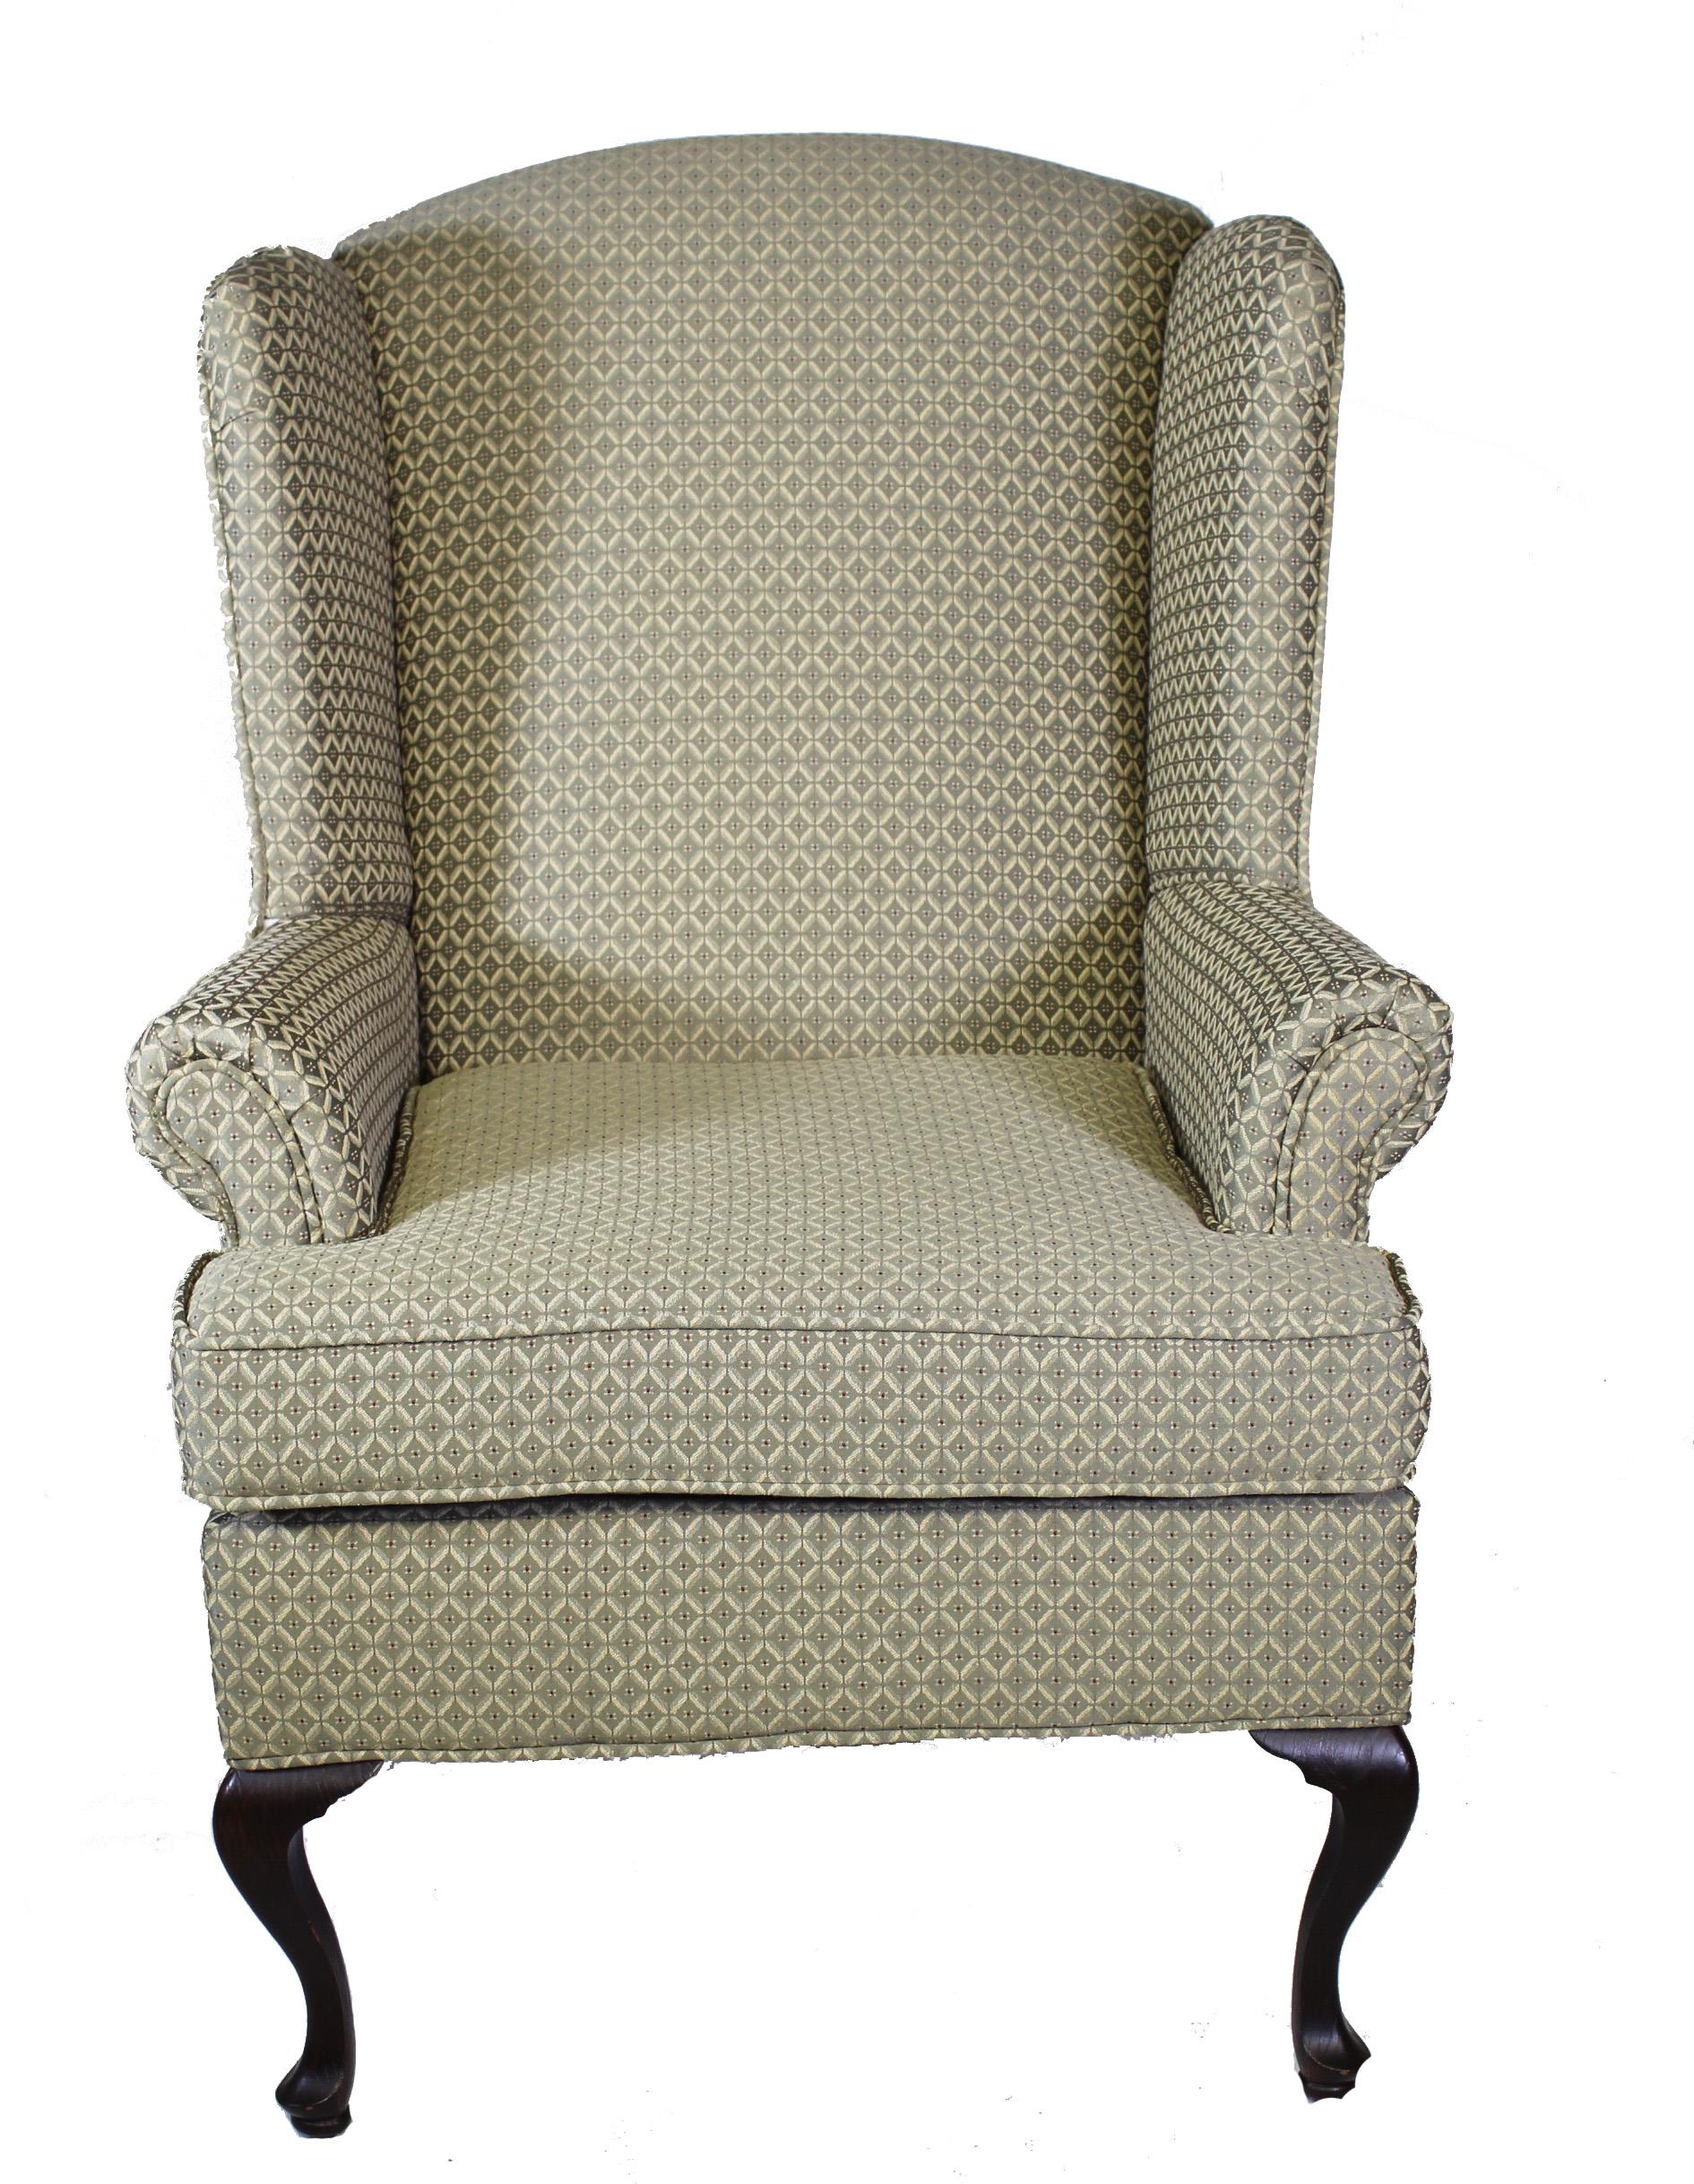 Serta Upholstery by Hughes 2200 Wing Chair - Item Number: 2200 Pewter